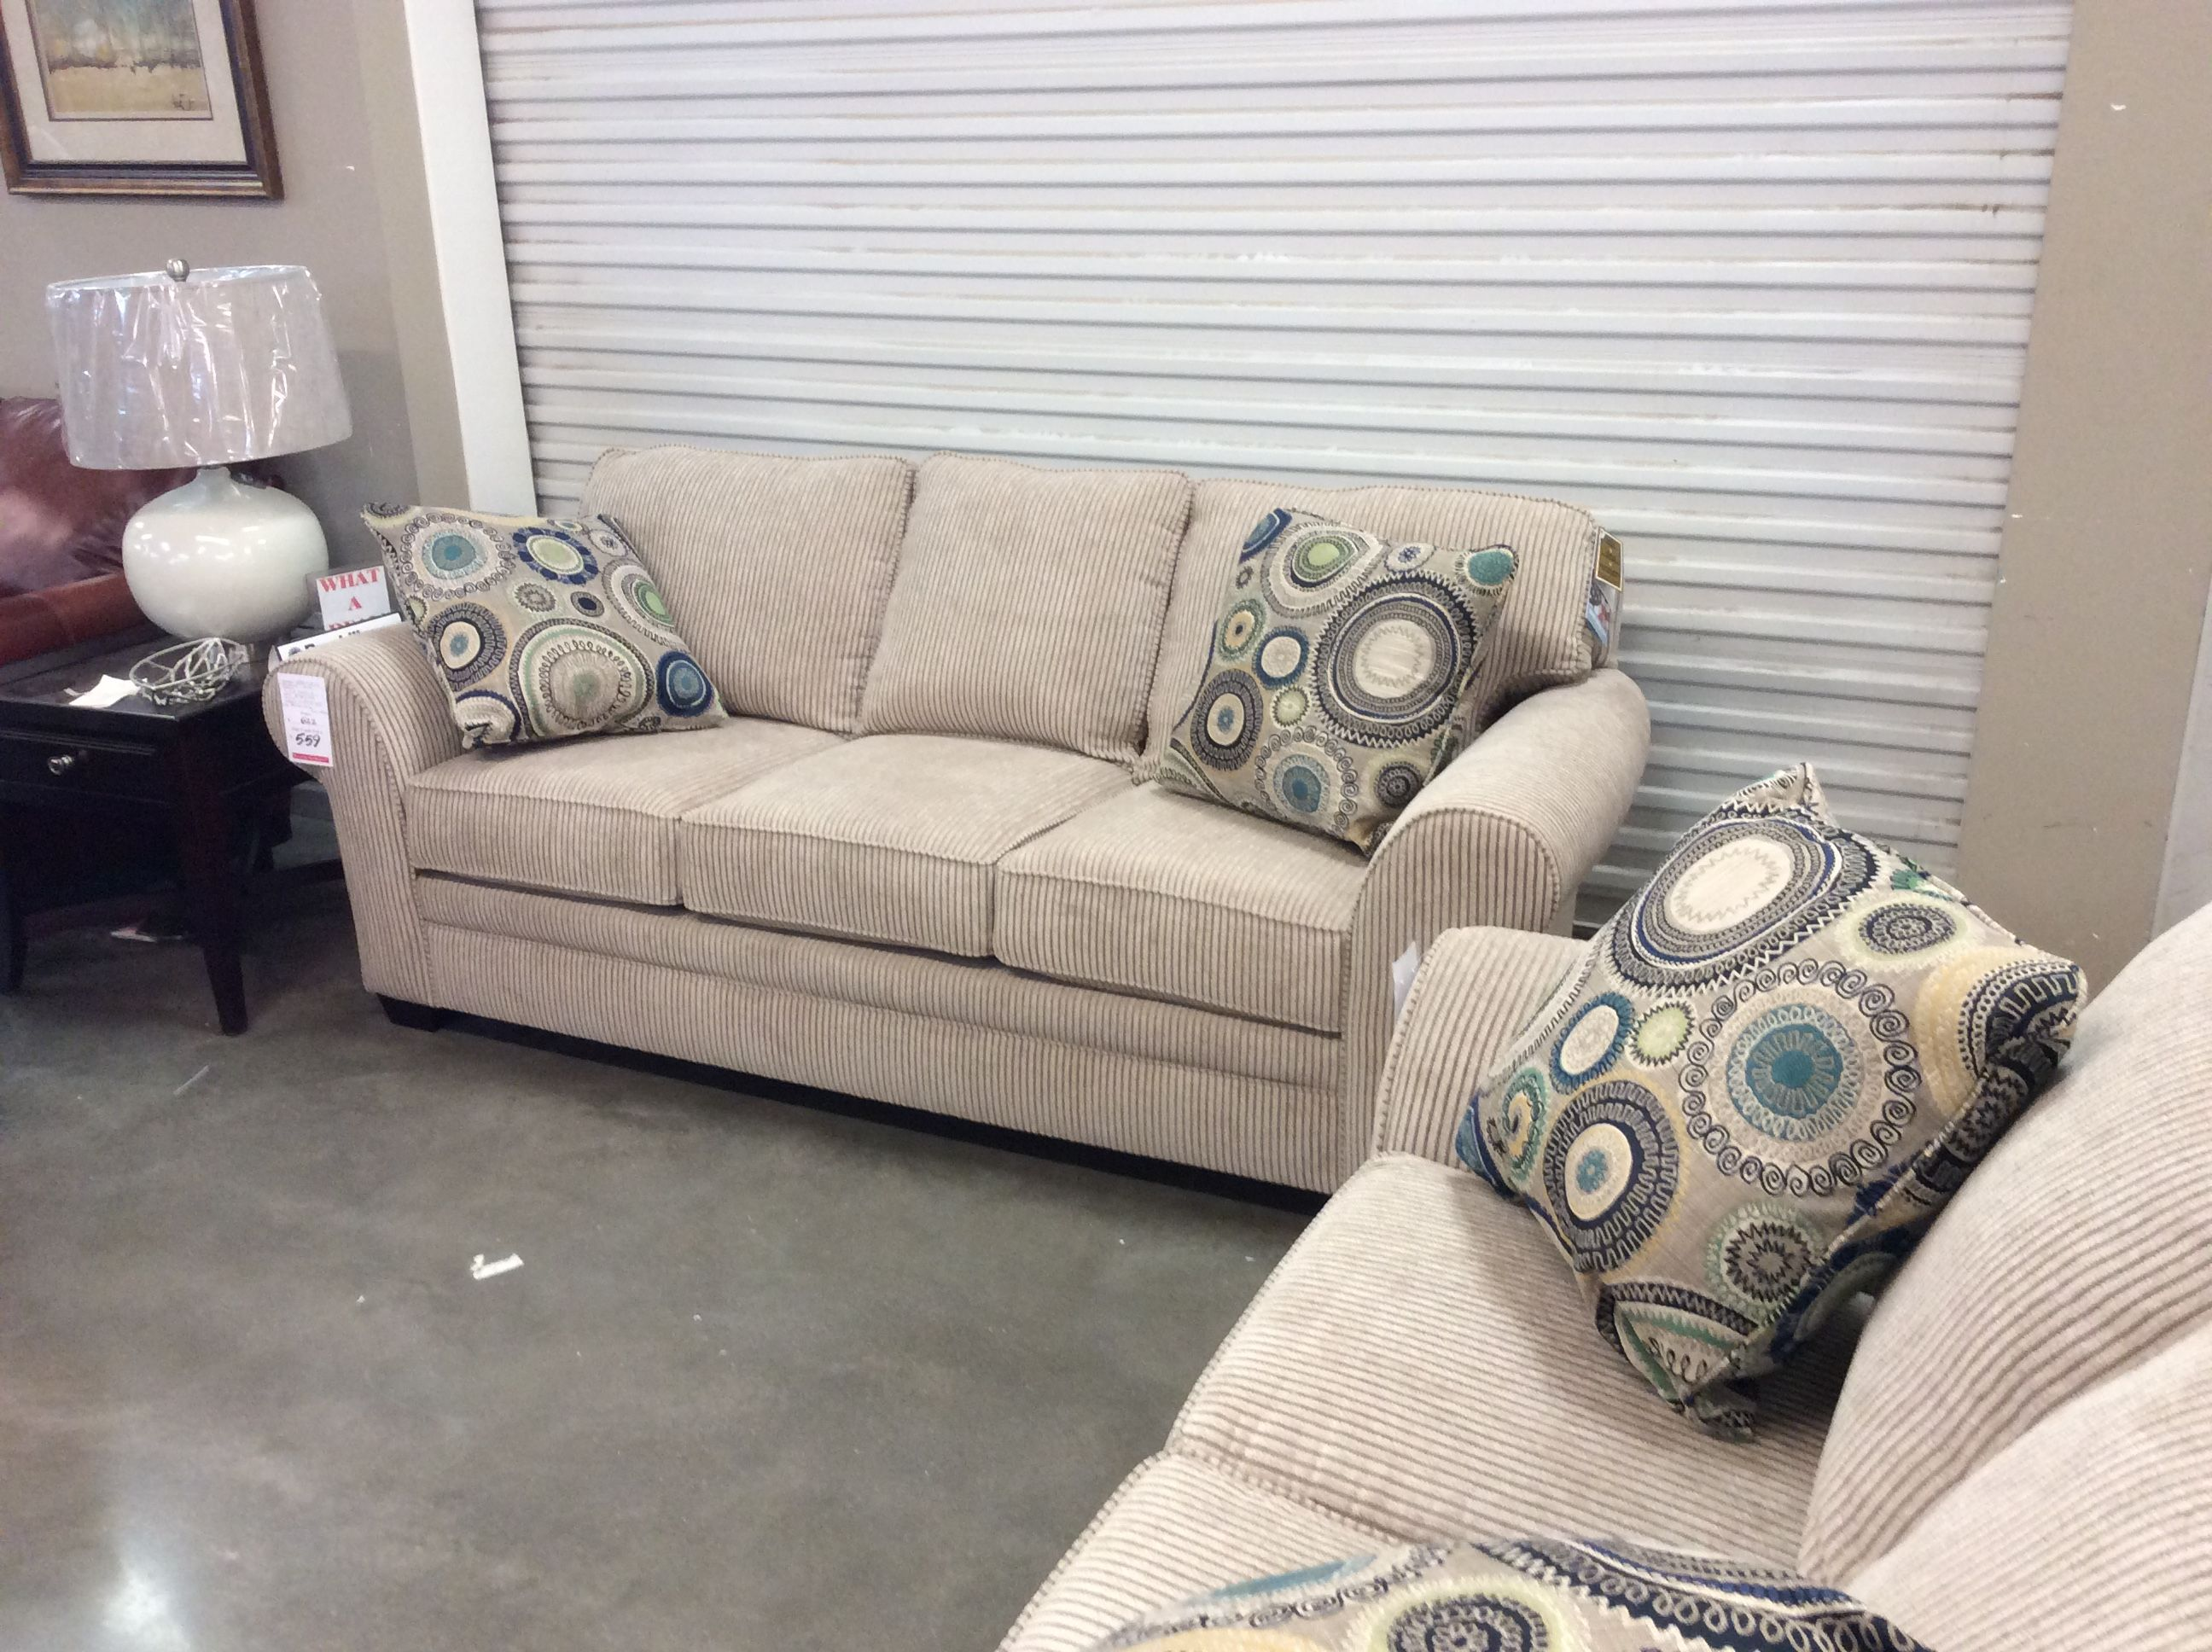 The Broyhill Quot Zachery Quot Sofa And Love Seat In A Soft